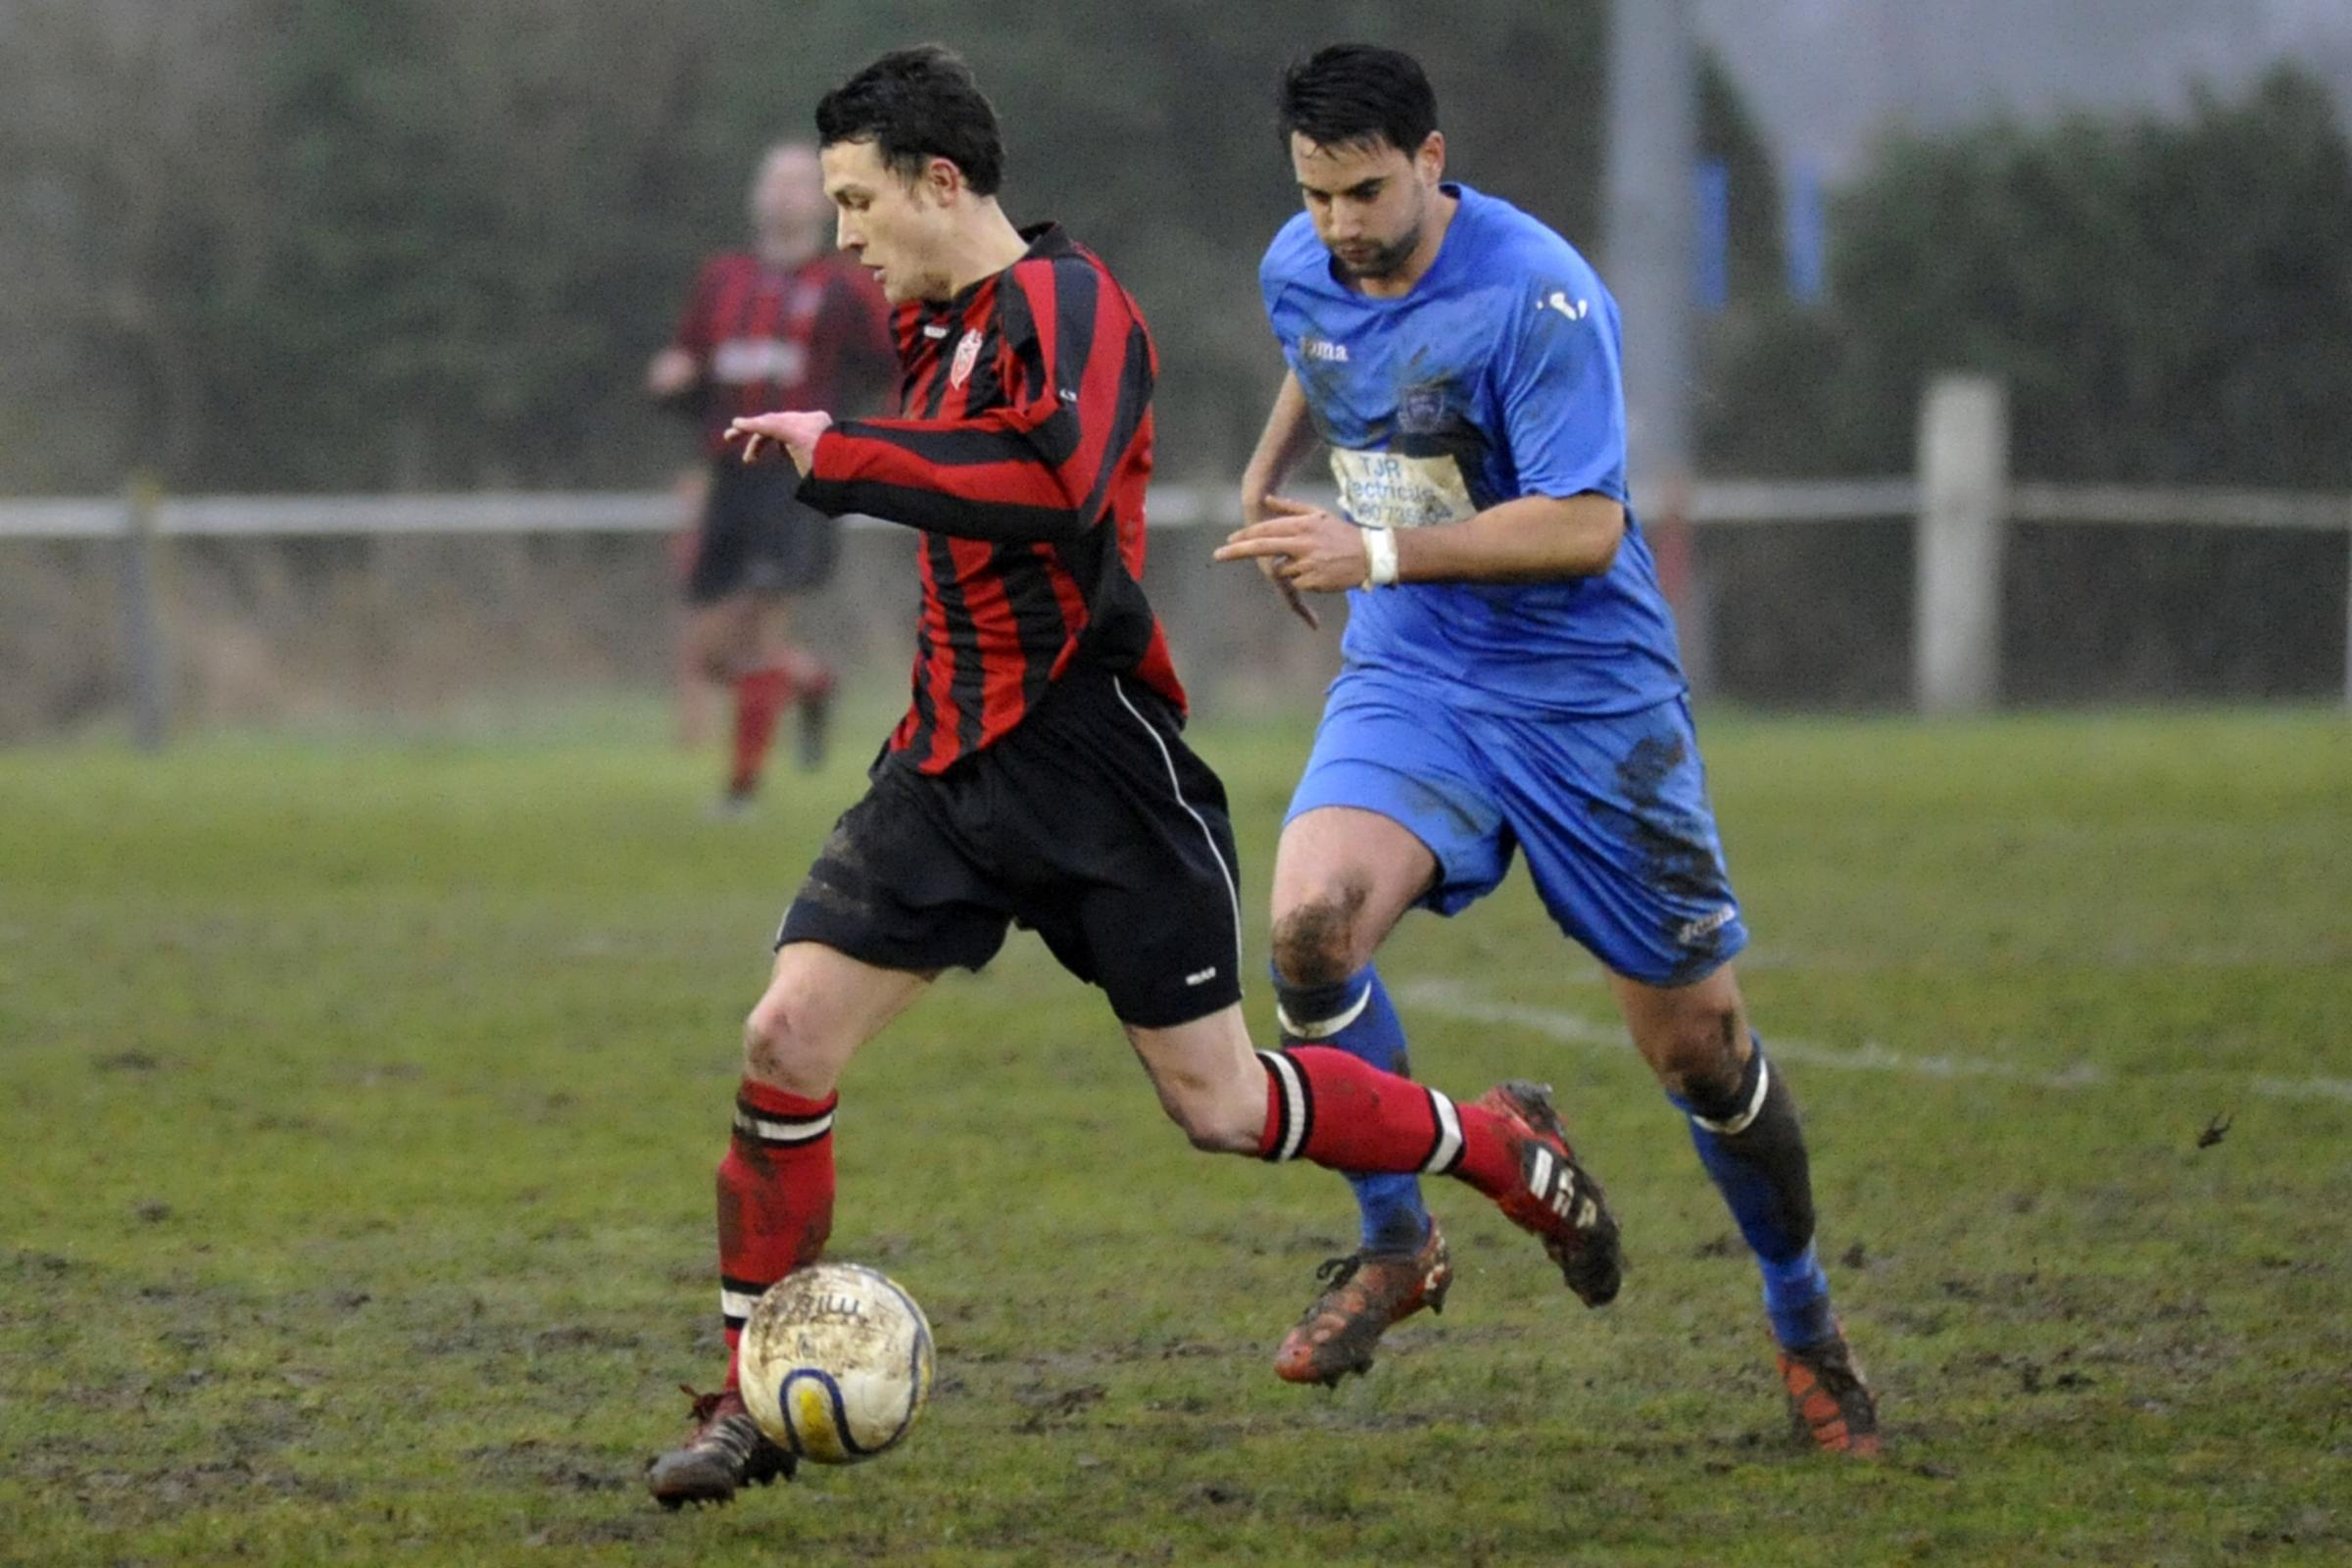 Louis Sparey (left) scored for Warminster Town as they beat Cheddar last night